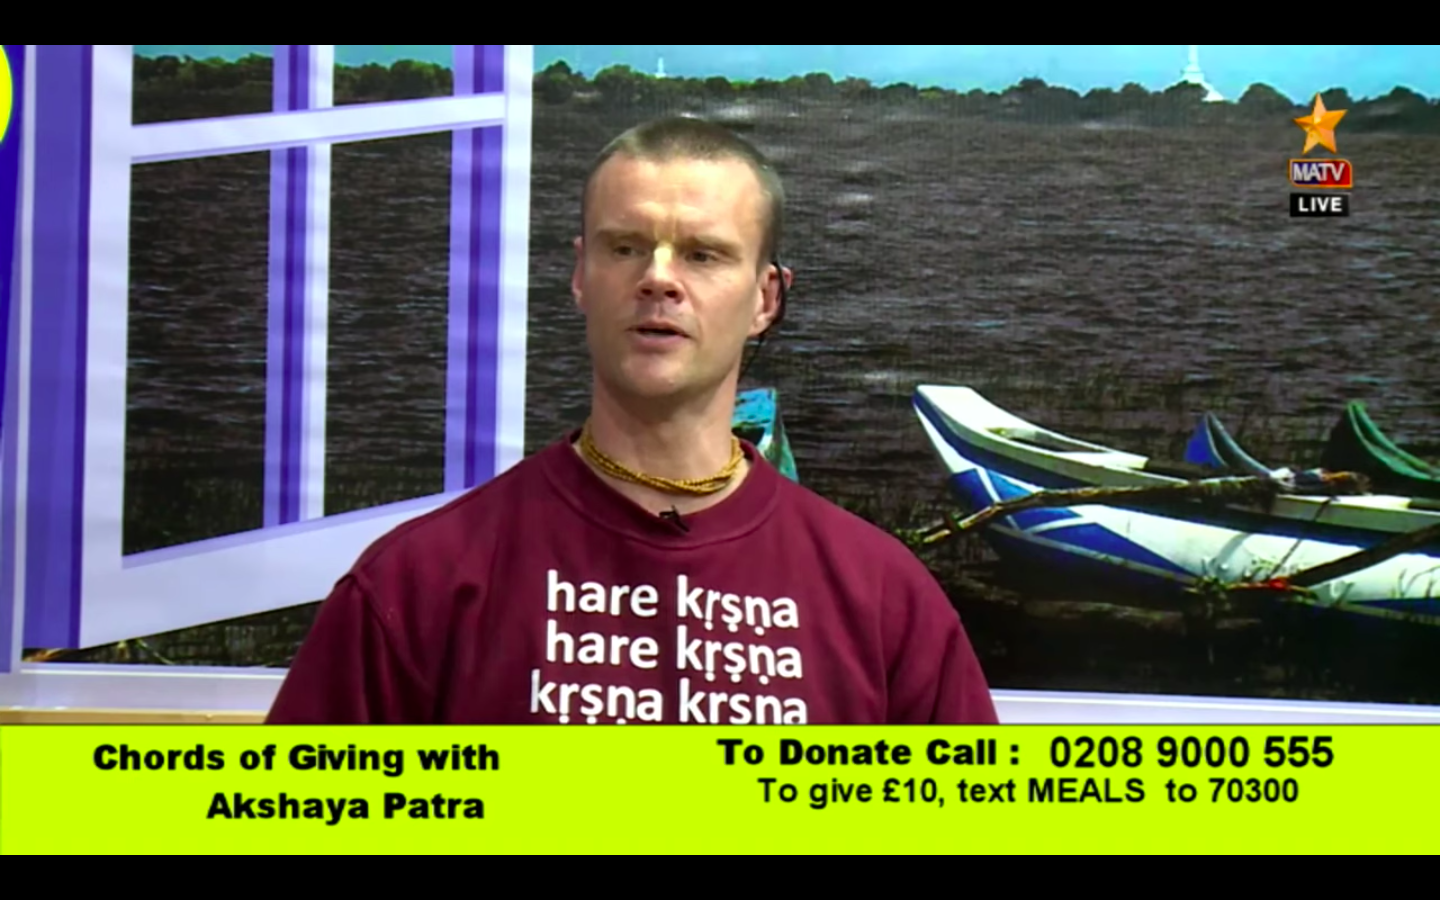 Live Satsang with Akshaya Patra UK Live on MATV